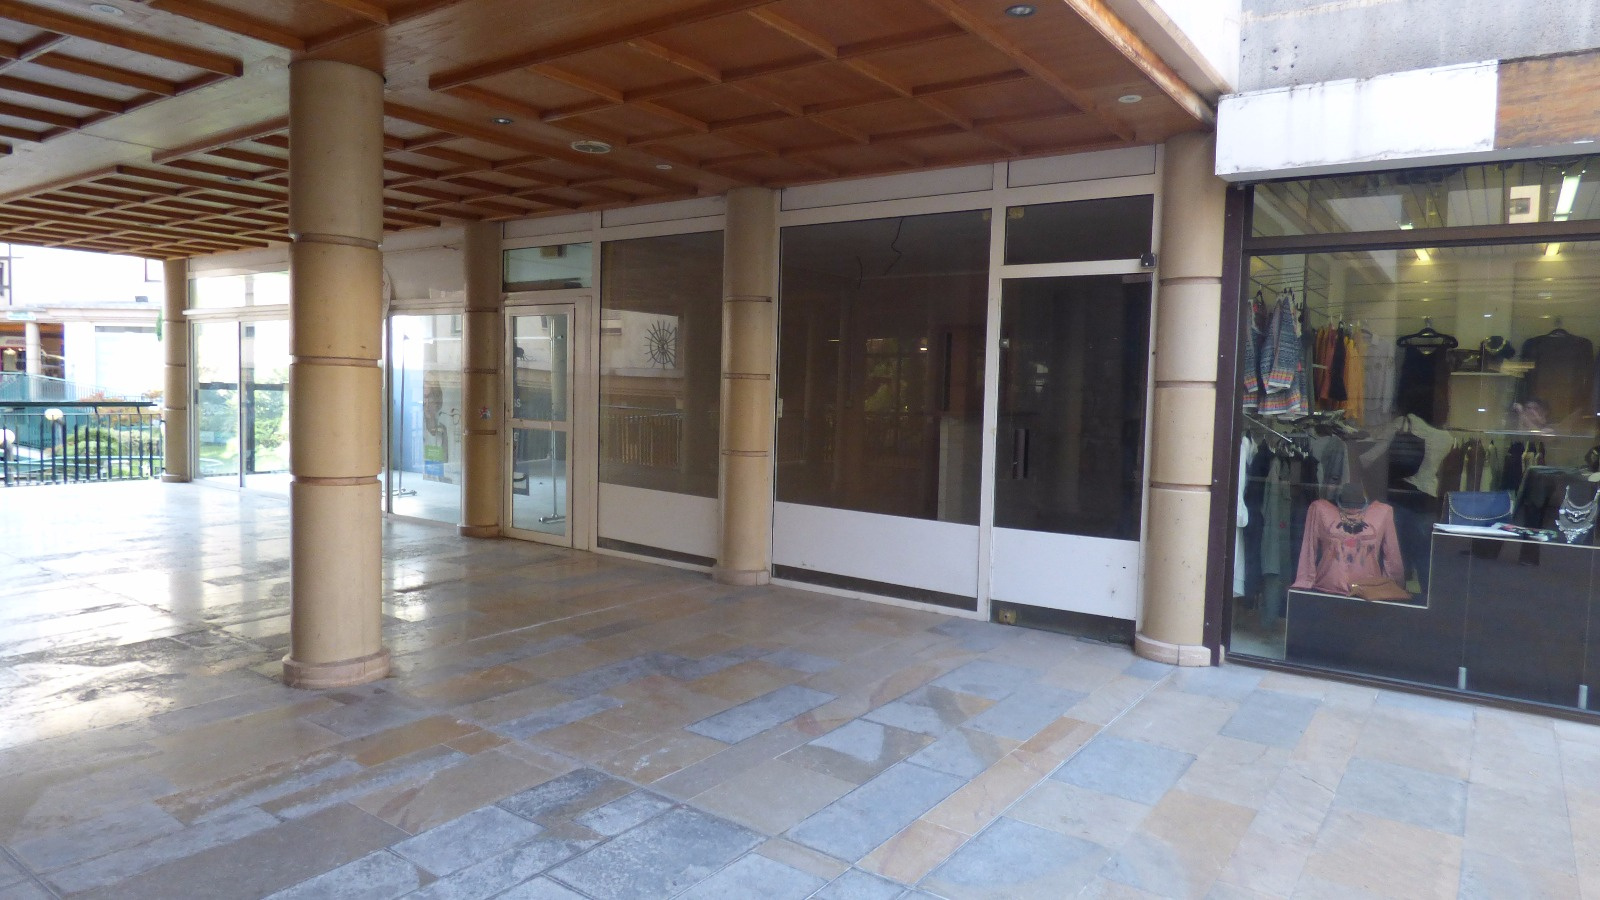 Location Immobilier Professionnel Local commercial Manosque 04100